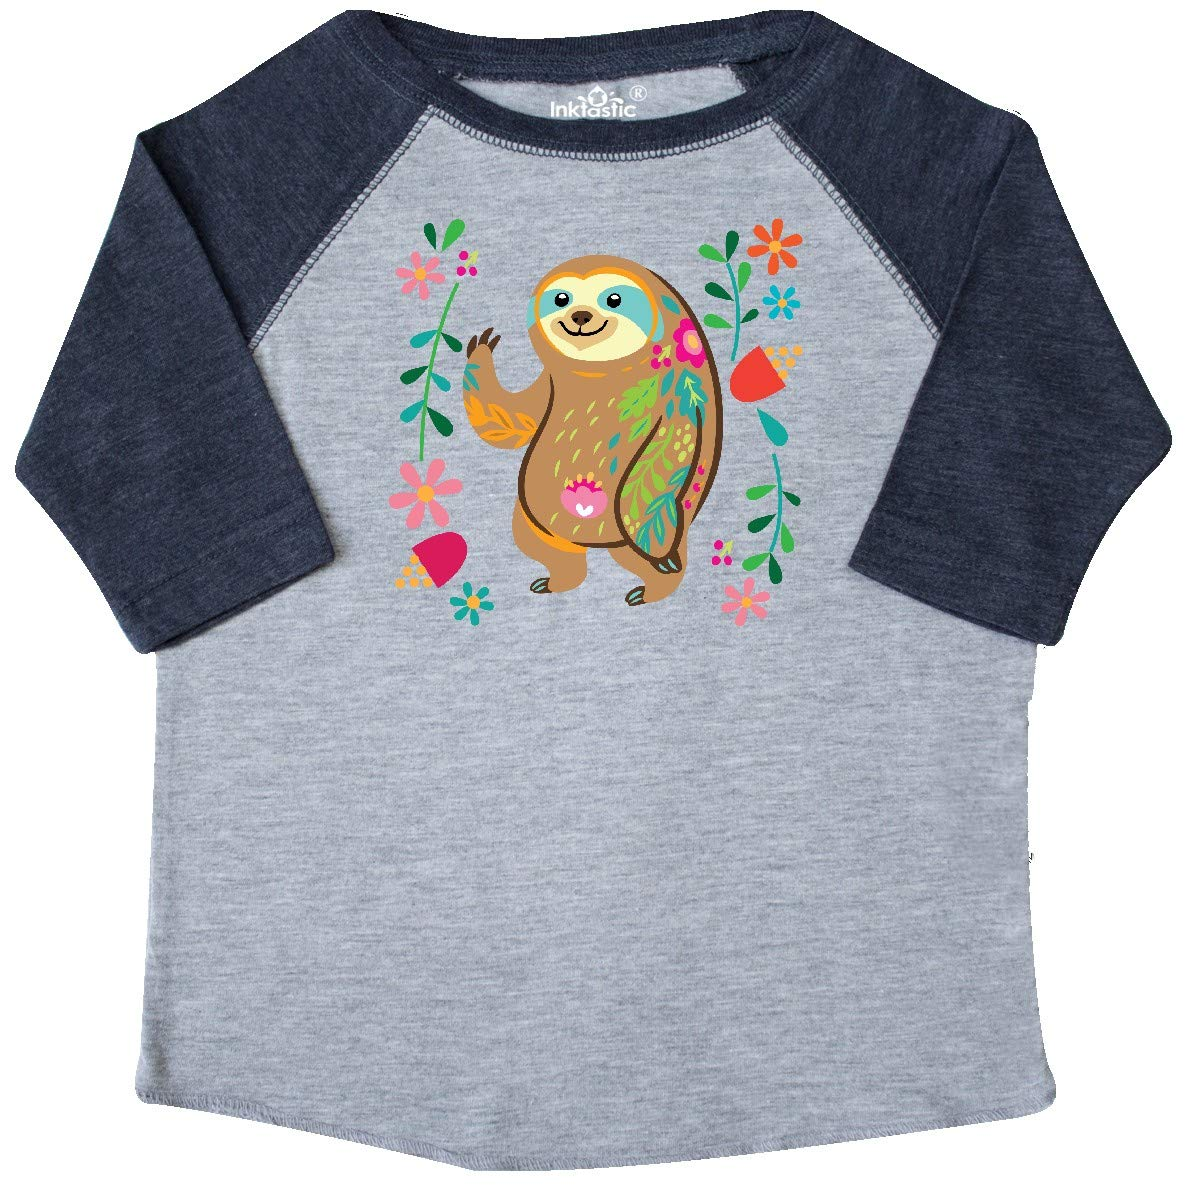 inktastic Sloth Cute Outfit for Girls Toddler T-Shirt